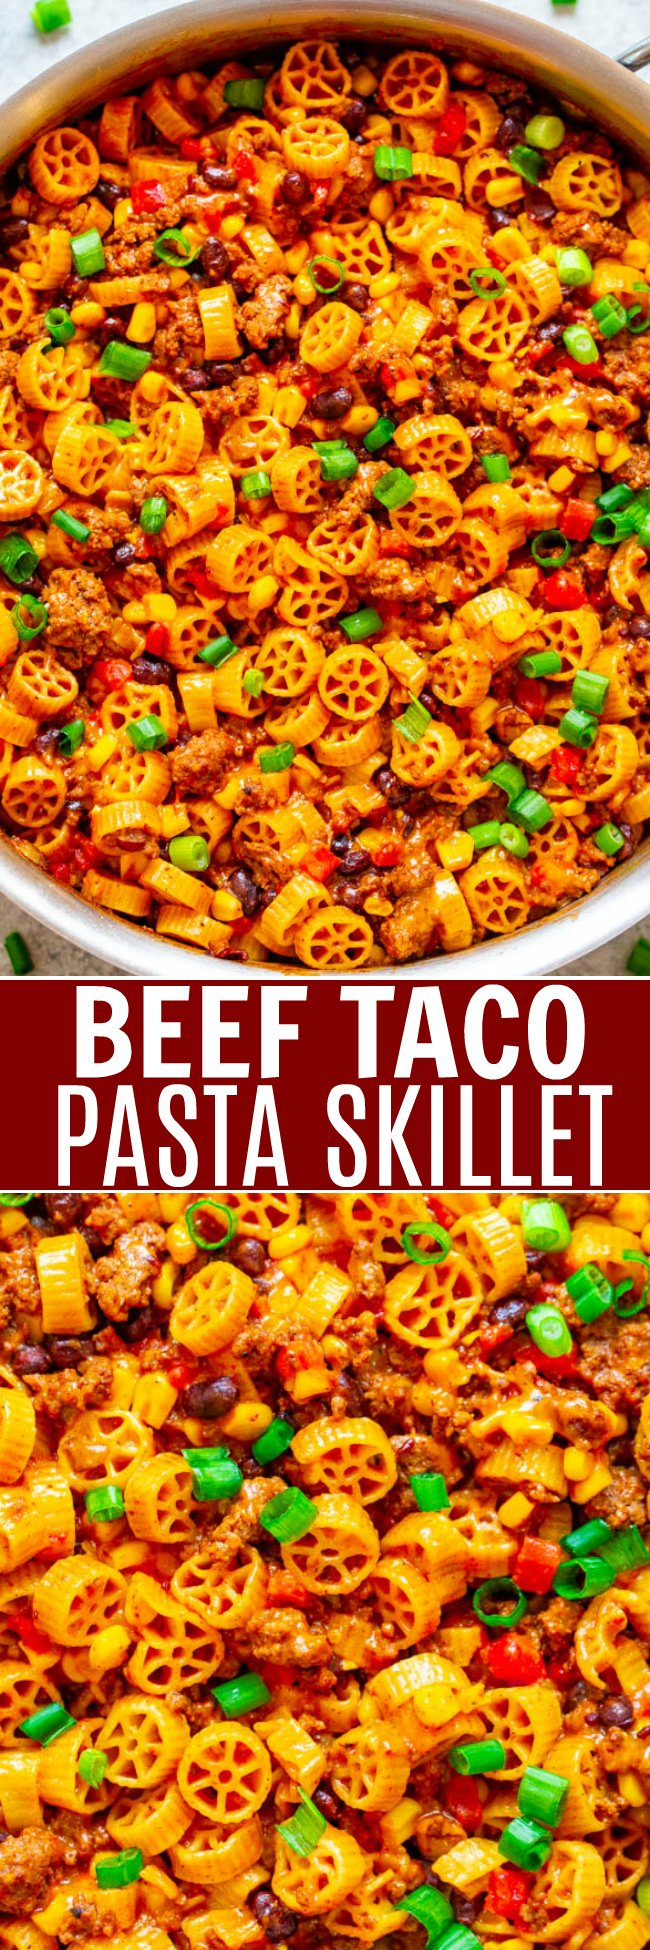 Beef Taco Pasta Skillet – An EASY recipe that's ready in 20 minutes, made in ONE skillet, and loaded with Mexican-inspired flavors!! A family favorite that's great for busy weeknights!!